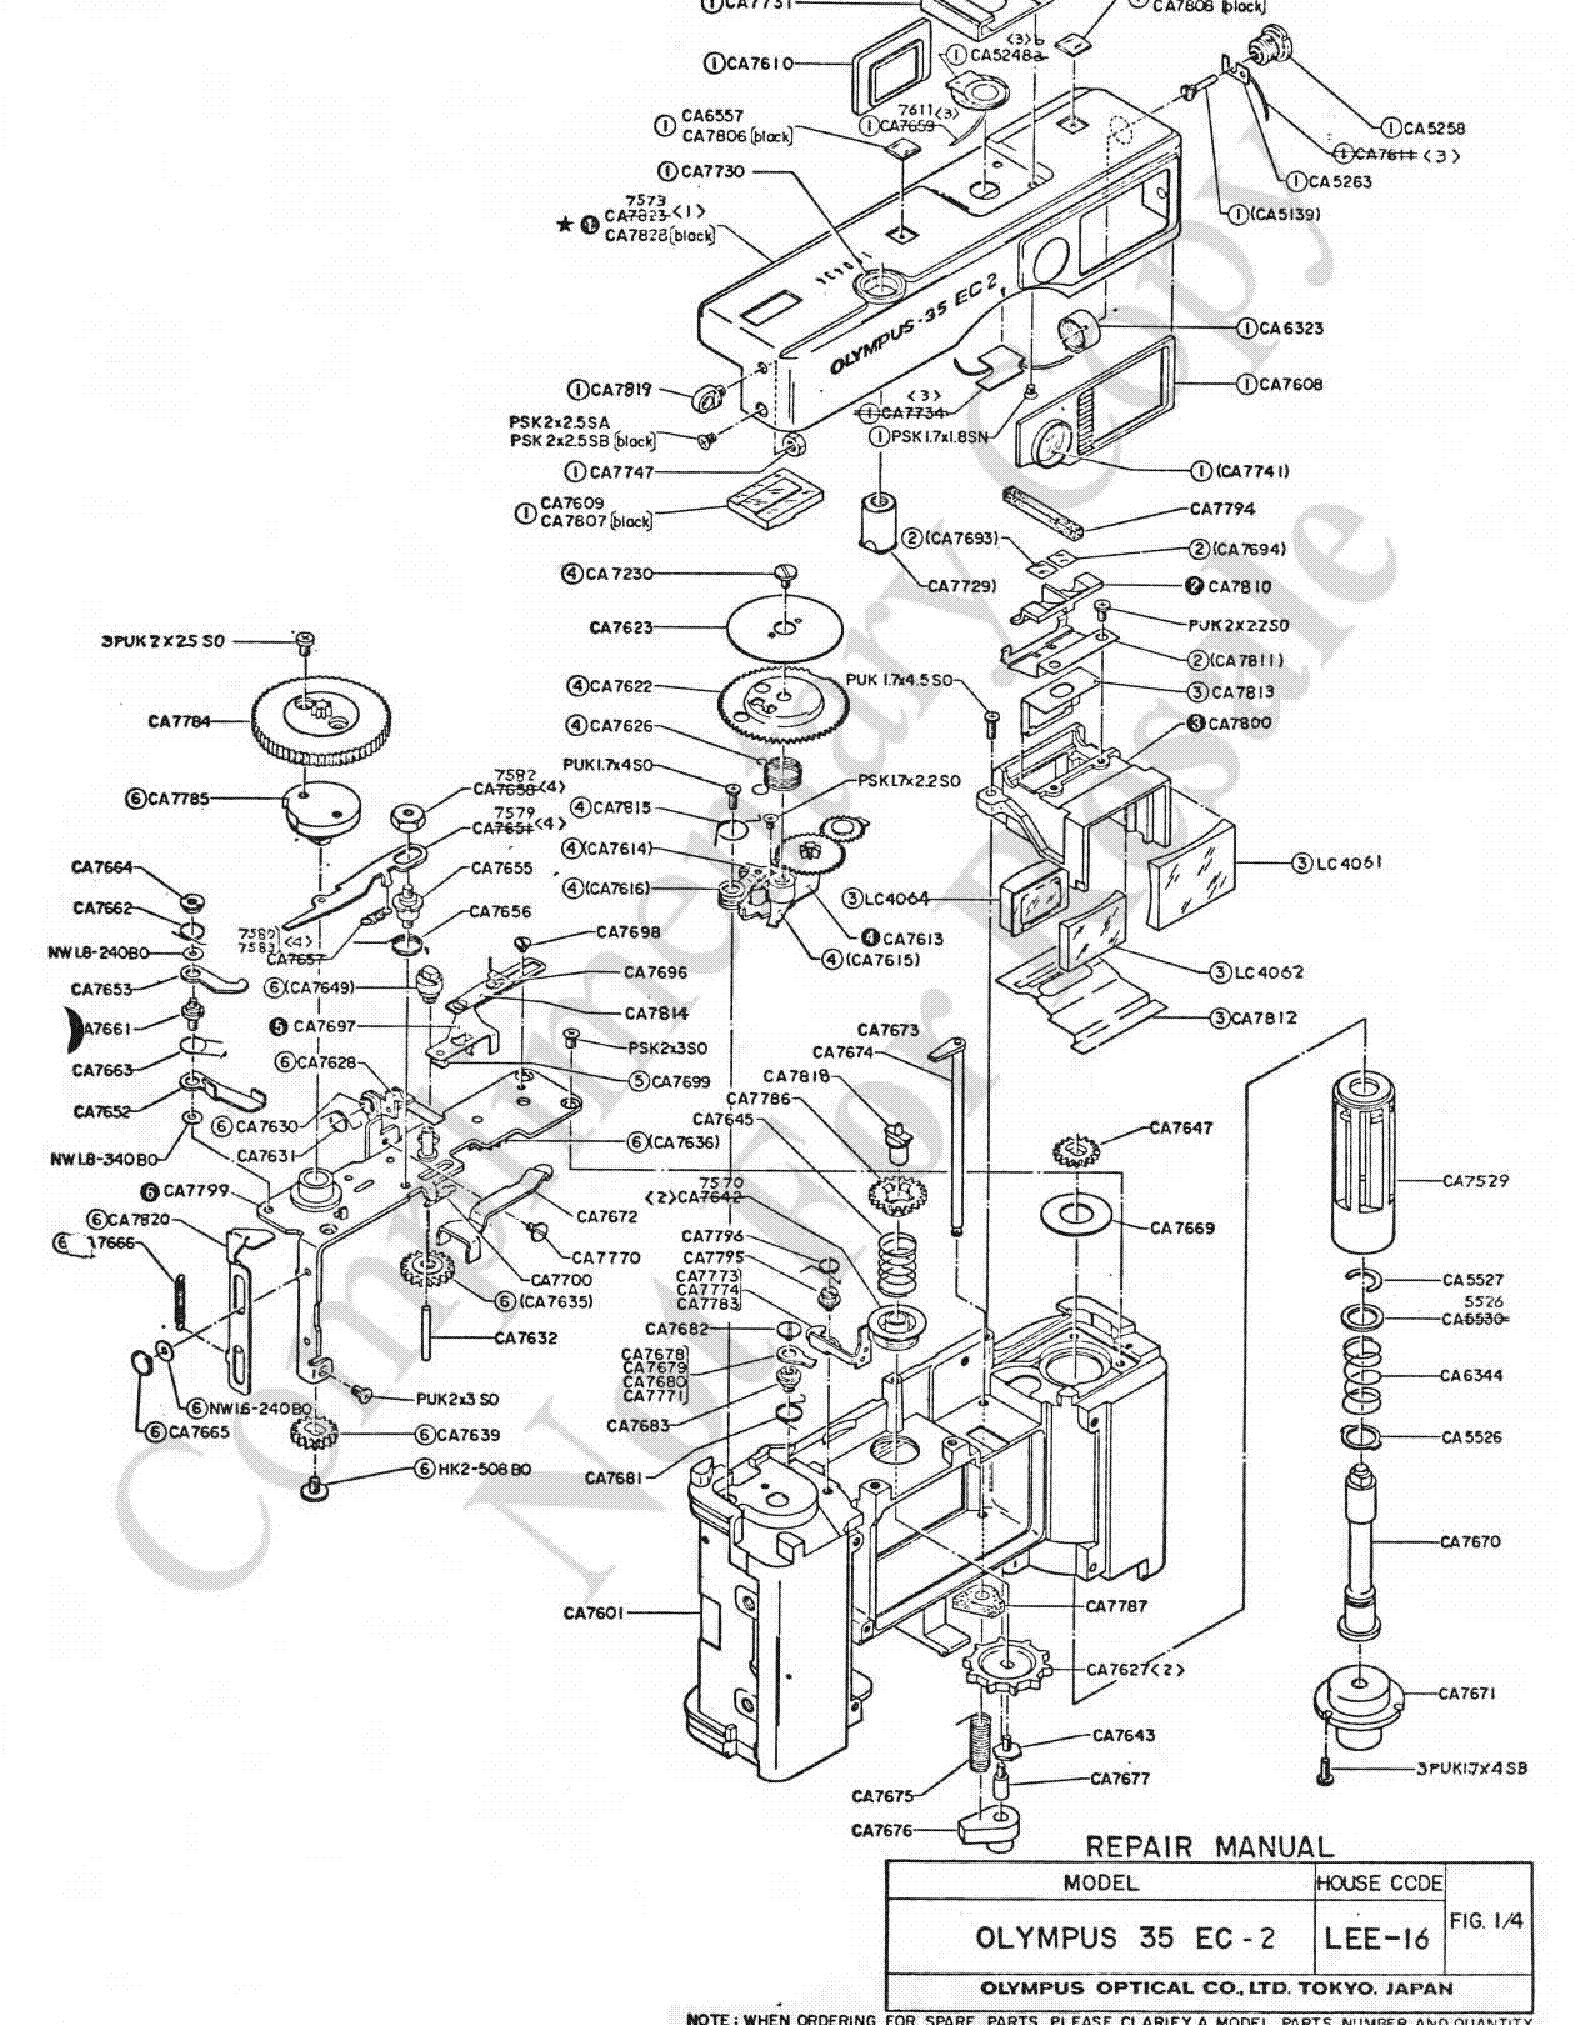 Olympus 35ec 2 Exploded Parts Diagram Service Manual